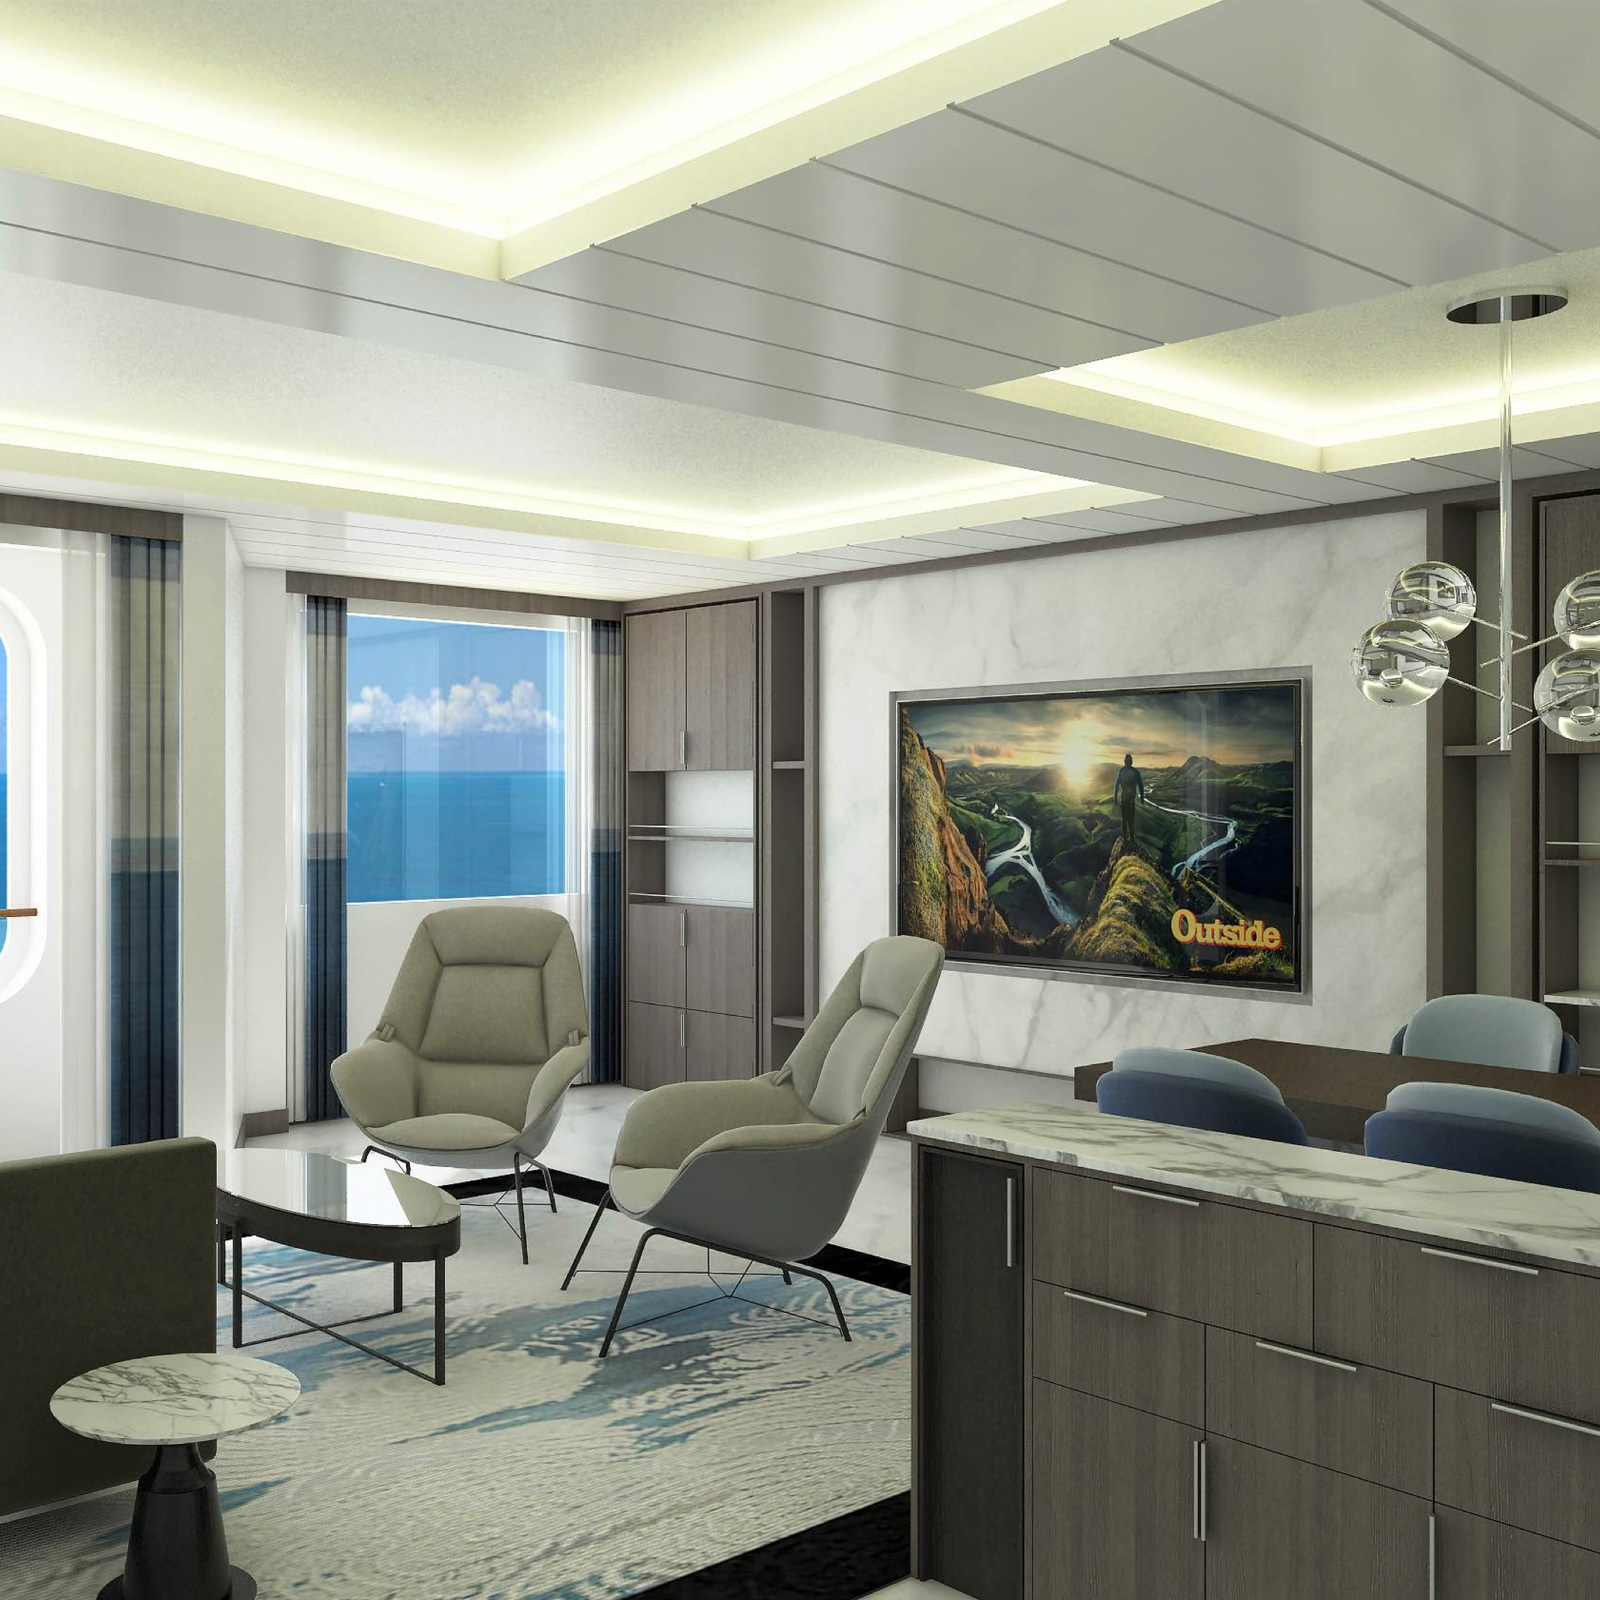 """""""By owning a world-class residence on Blue World, you'll experience luxury living aboard the first cruise line dedicated to active lifestyle cruising (sports, fitness, wellness). You'll be able to discover an amazing new world right from your home - and share it privately with family and friends."""" - Fredy DellisCo-Founder, Blue World VoyagesFormer President & CEO, The World at ResidenSeaPresident International, Burger King CorporationPresident International, The Hertz CorporationVisit BlueWorldOwnersClub.com"""